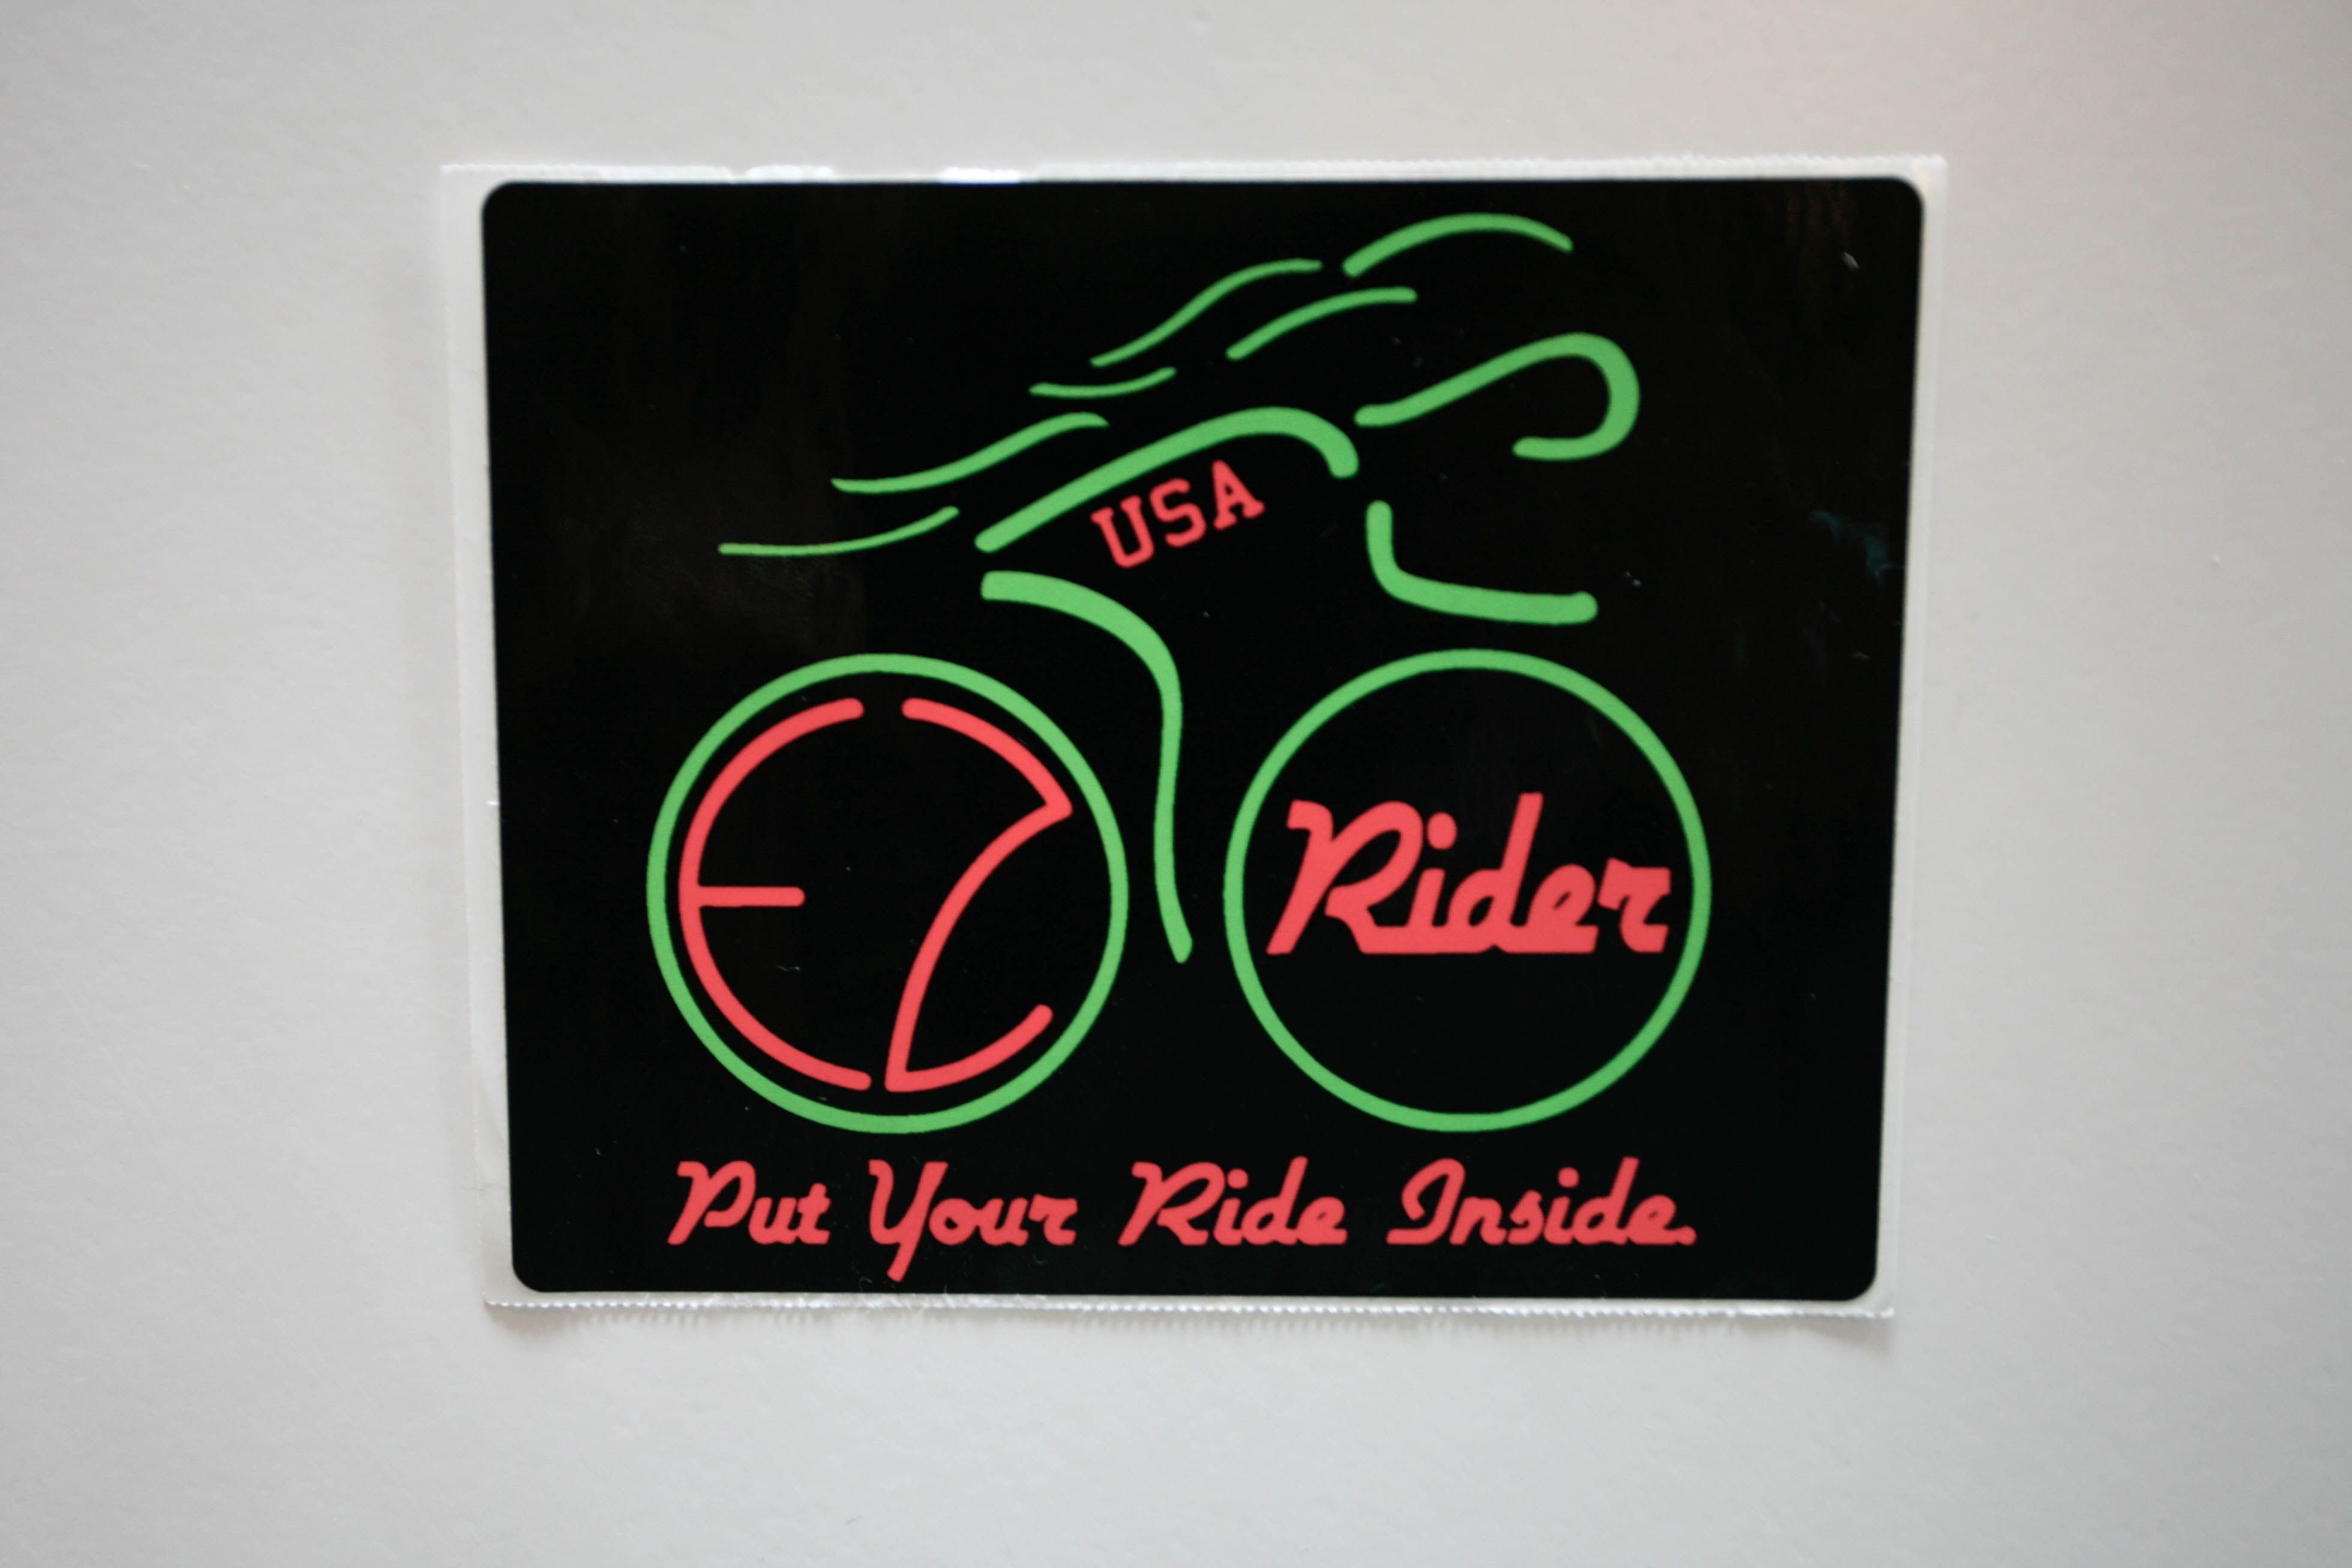 Vinyl Roll Sticker With 3 Ink Colors Black 1 Lt Green 13 And Ruby Red